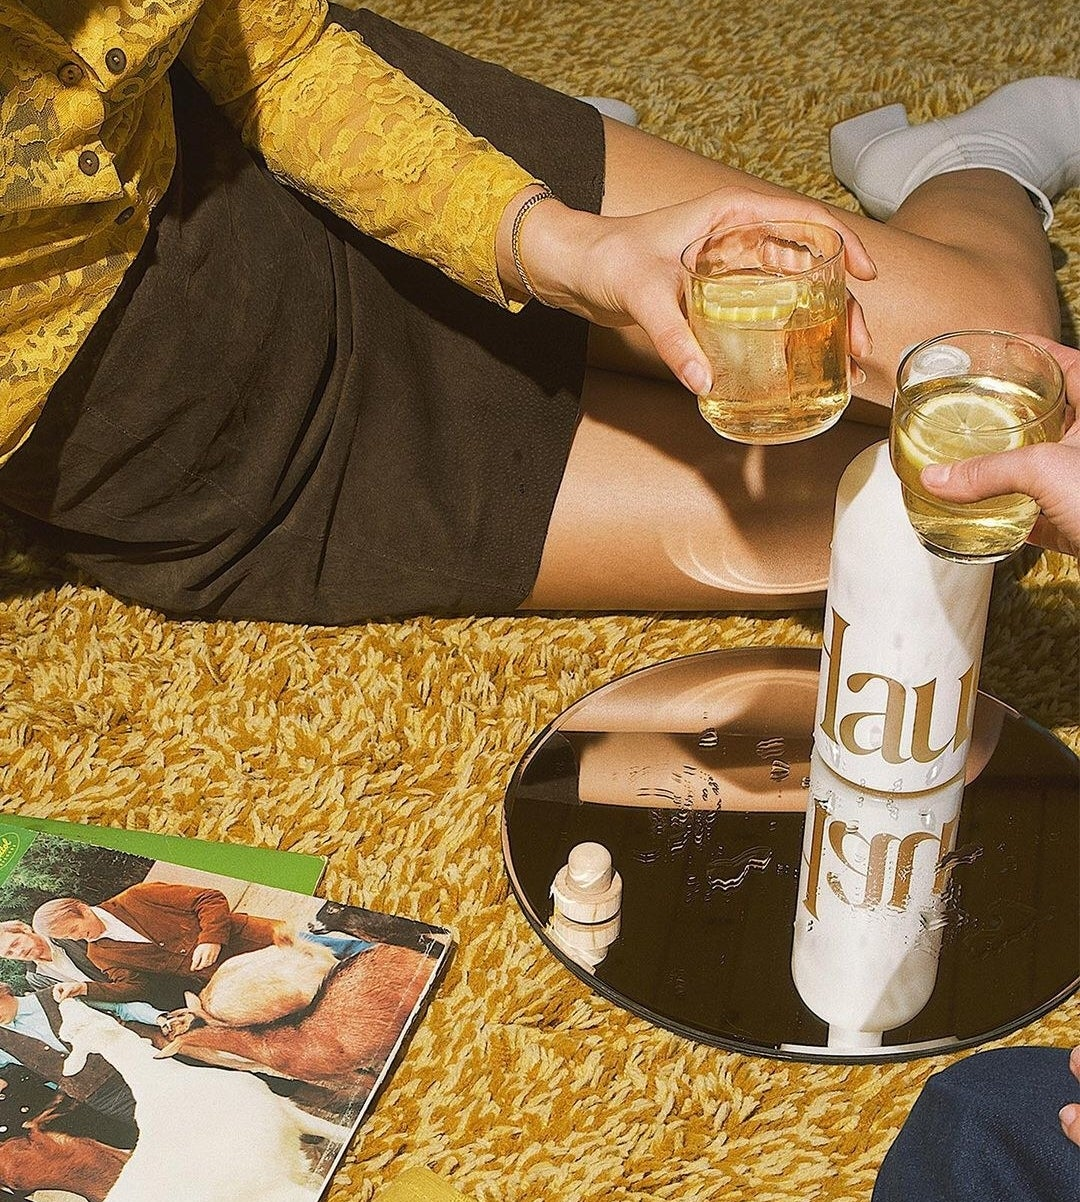 A tray with a bottle of Haus with a model holding a glass sitting on the floor